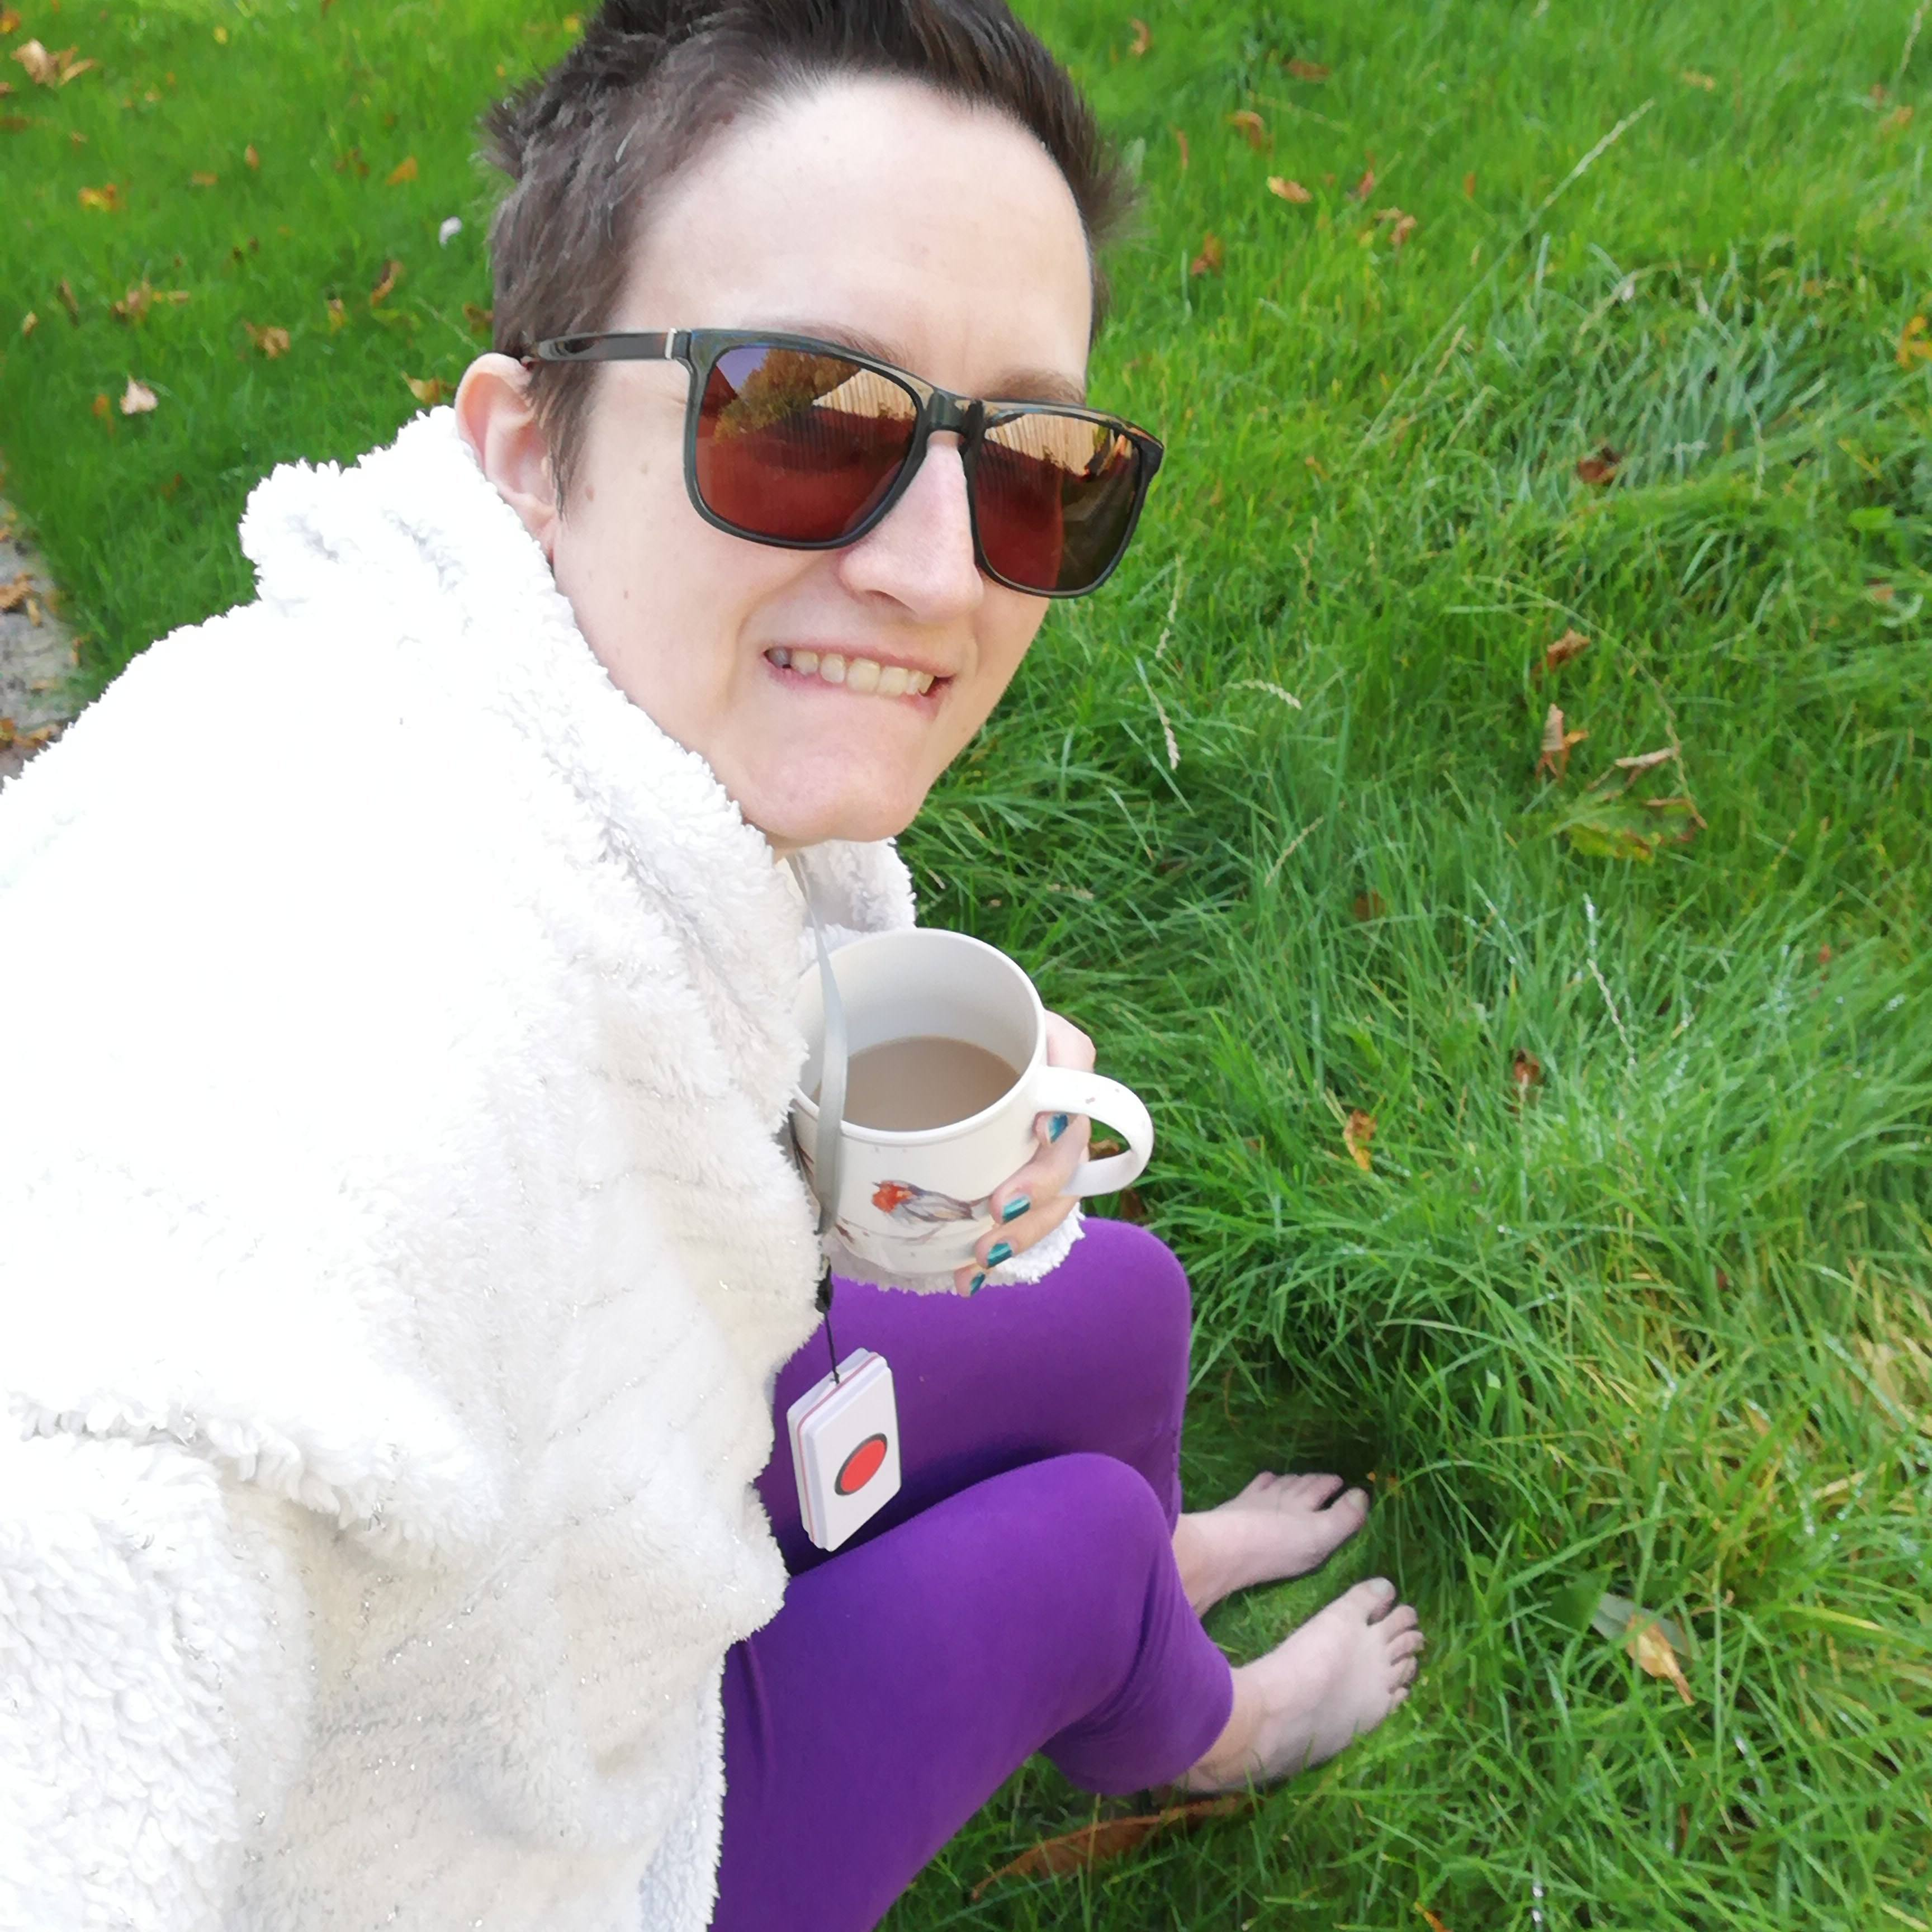 Char is sitting outside with a mug of coffee, her bare feet are on the grass.